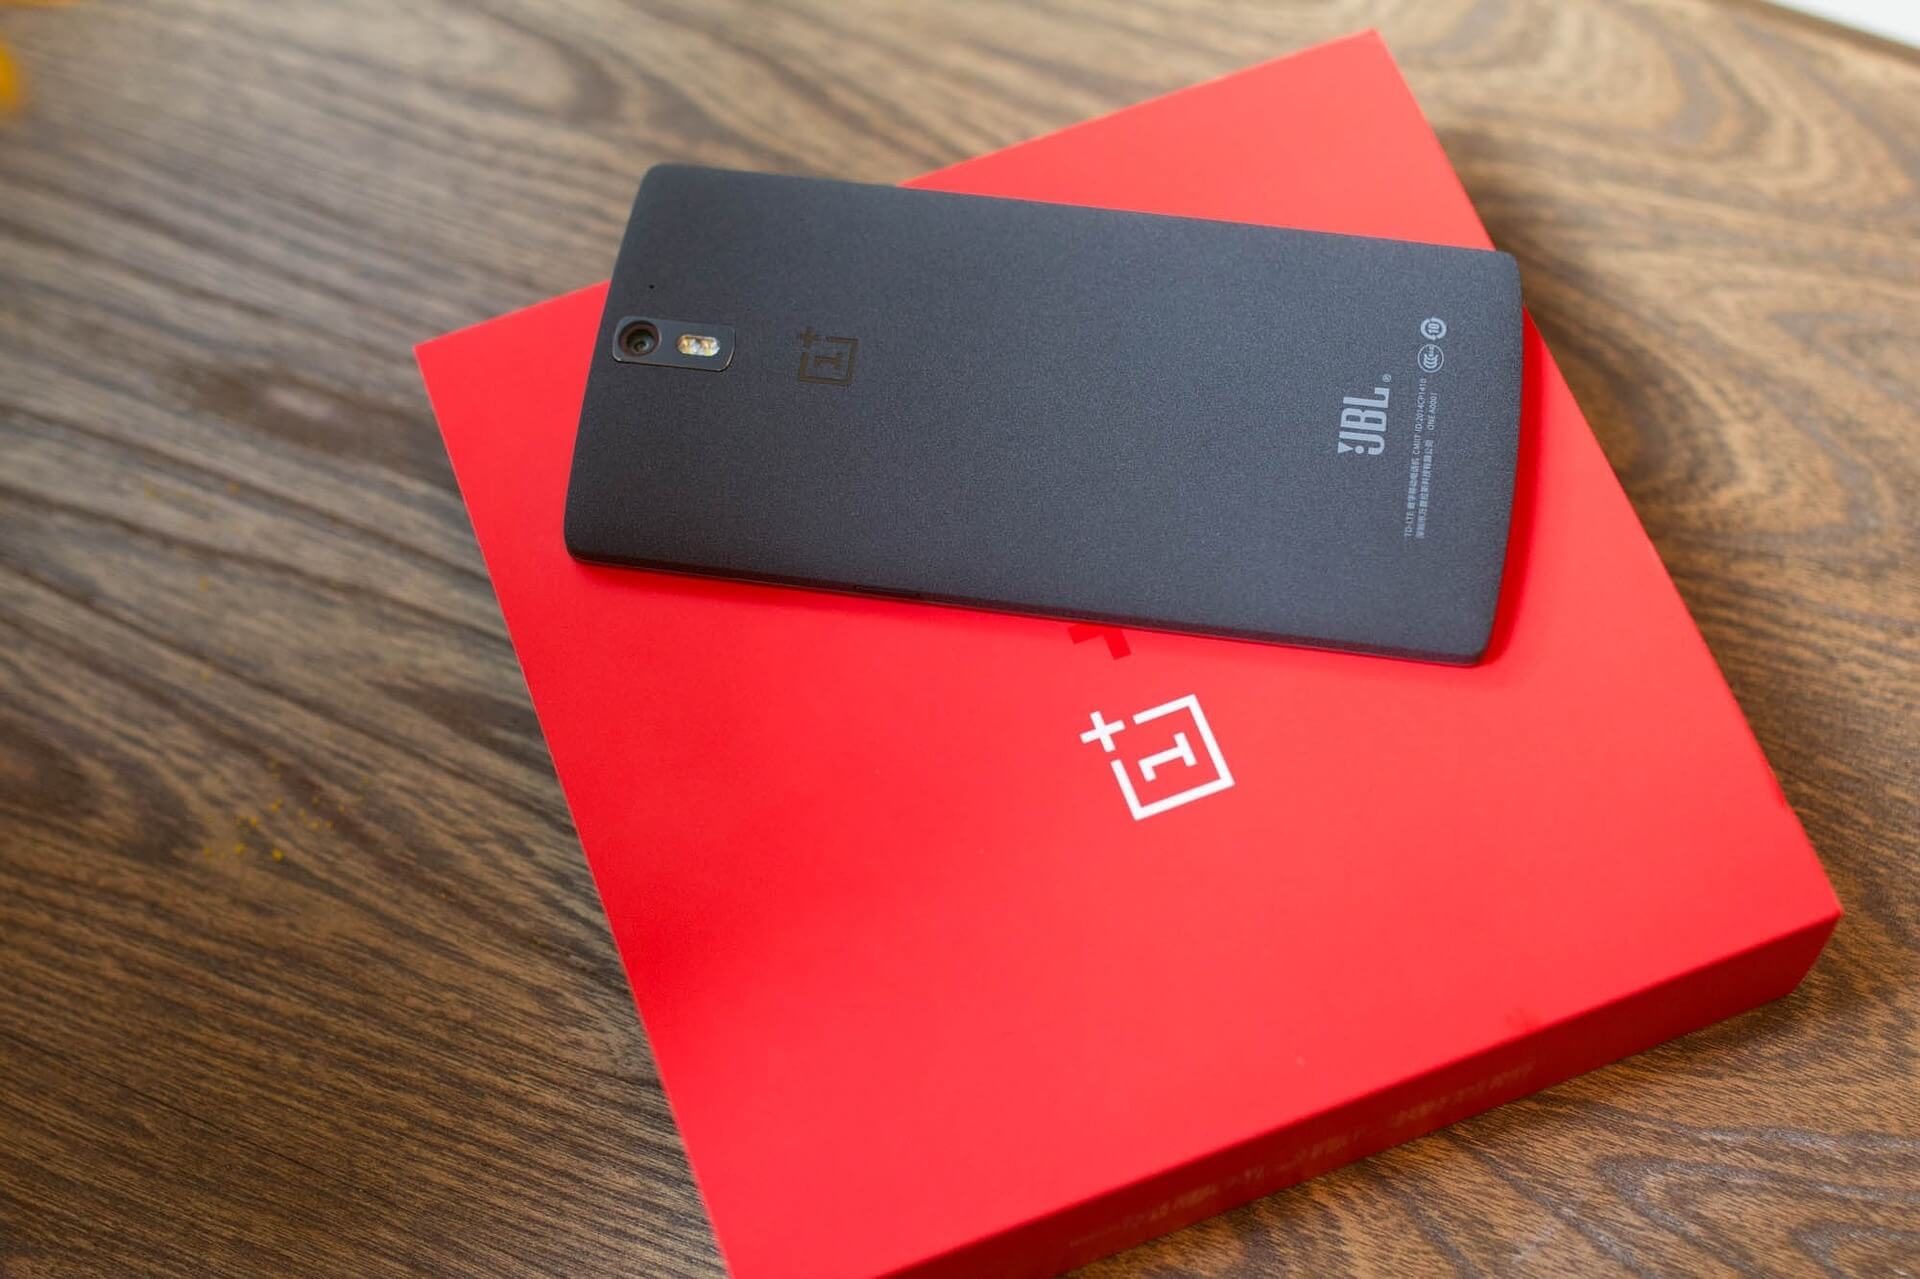 5 OxygenOS Features That Make OnePlus Phones Stand Out - Android